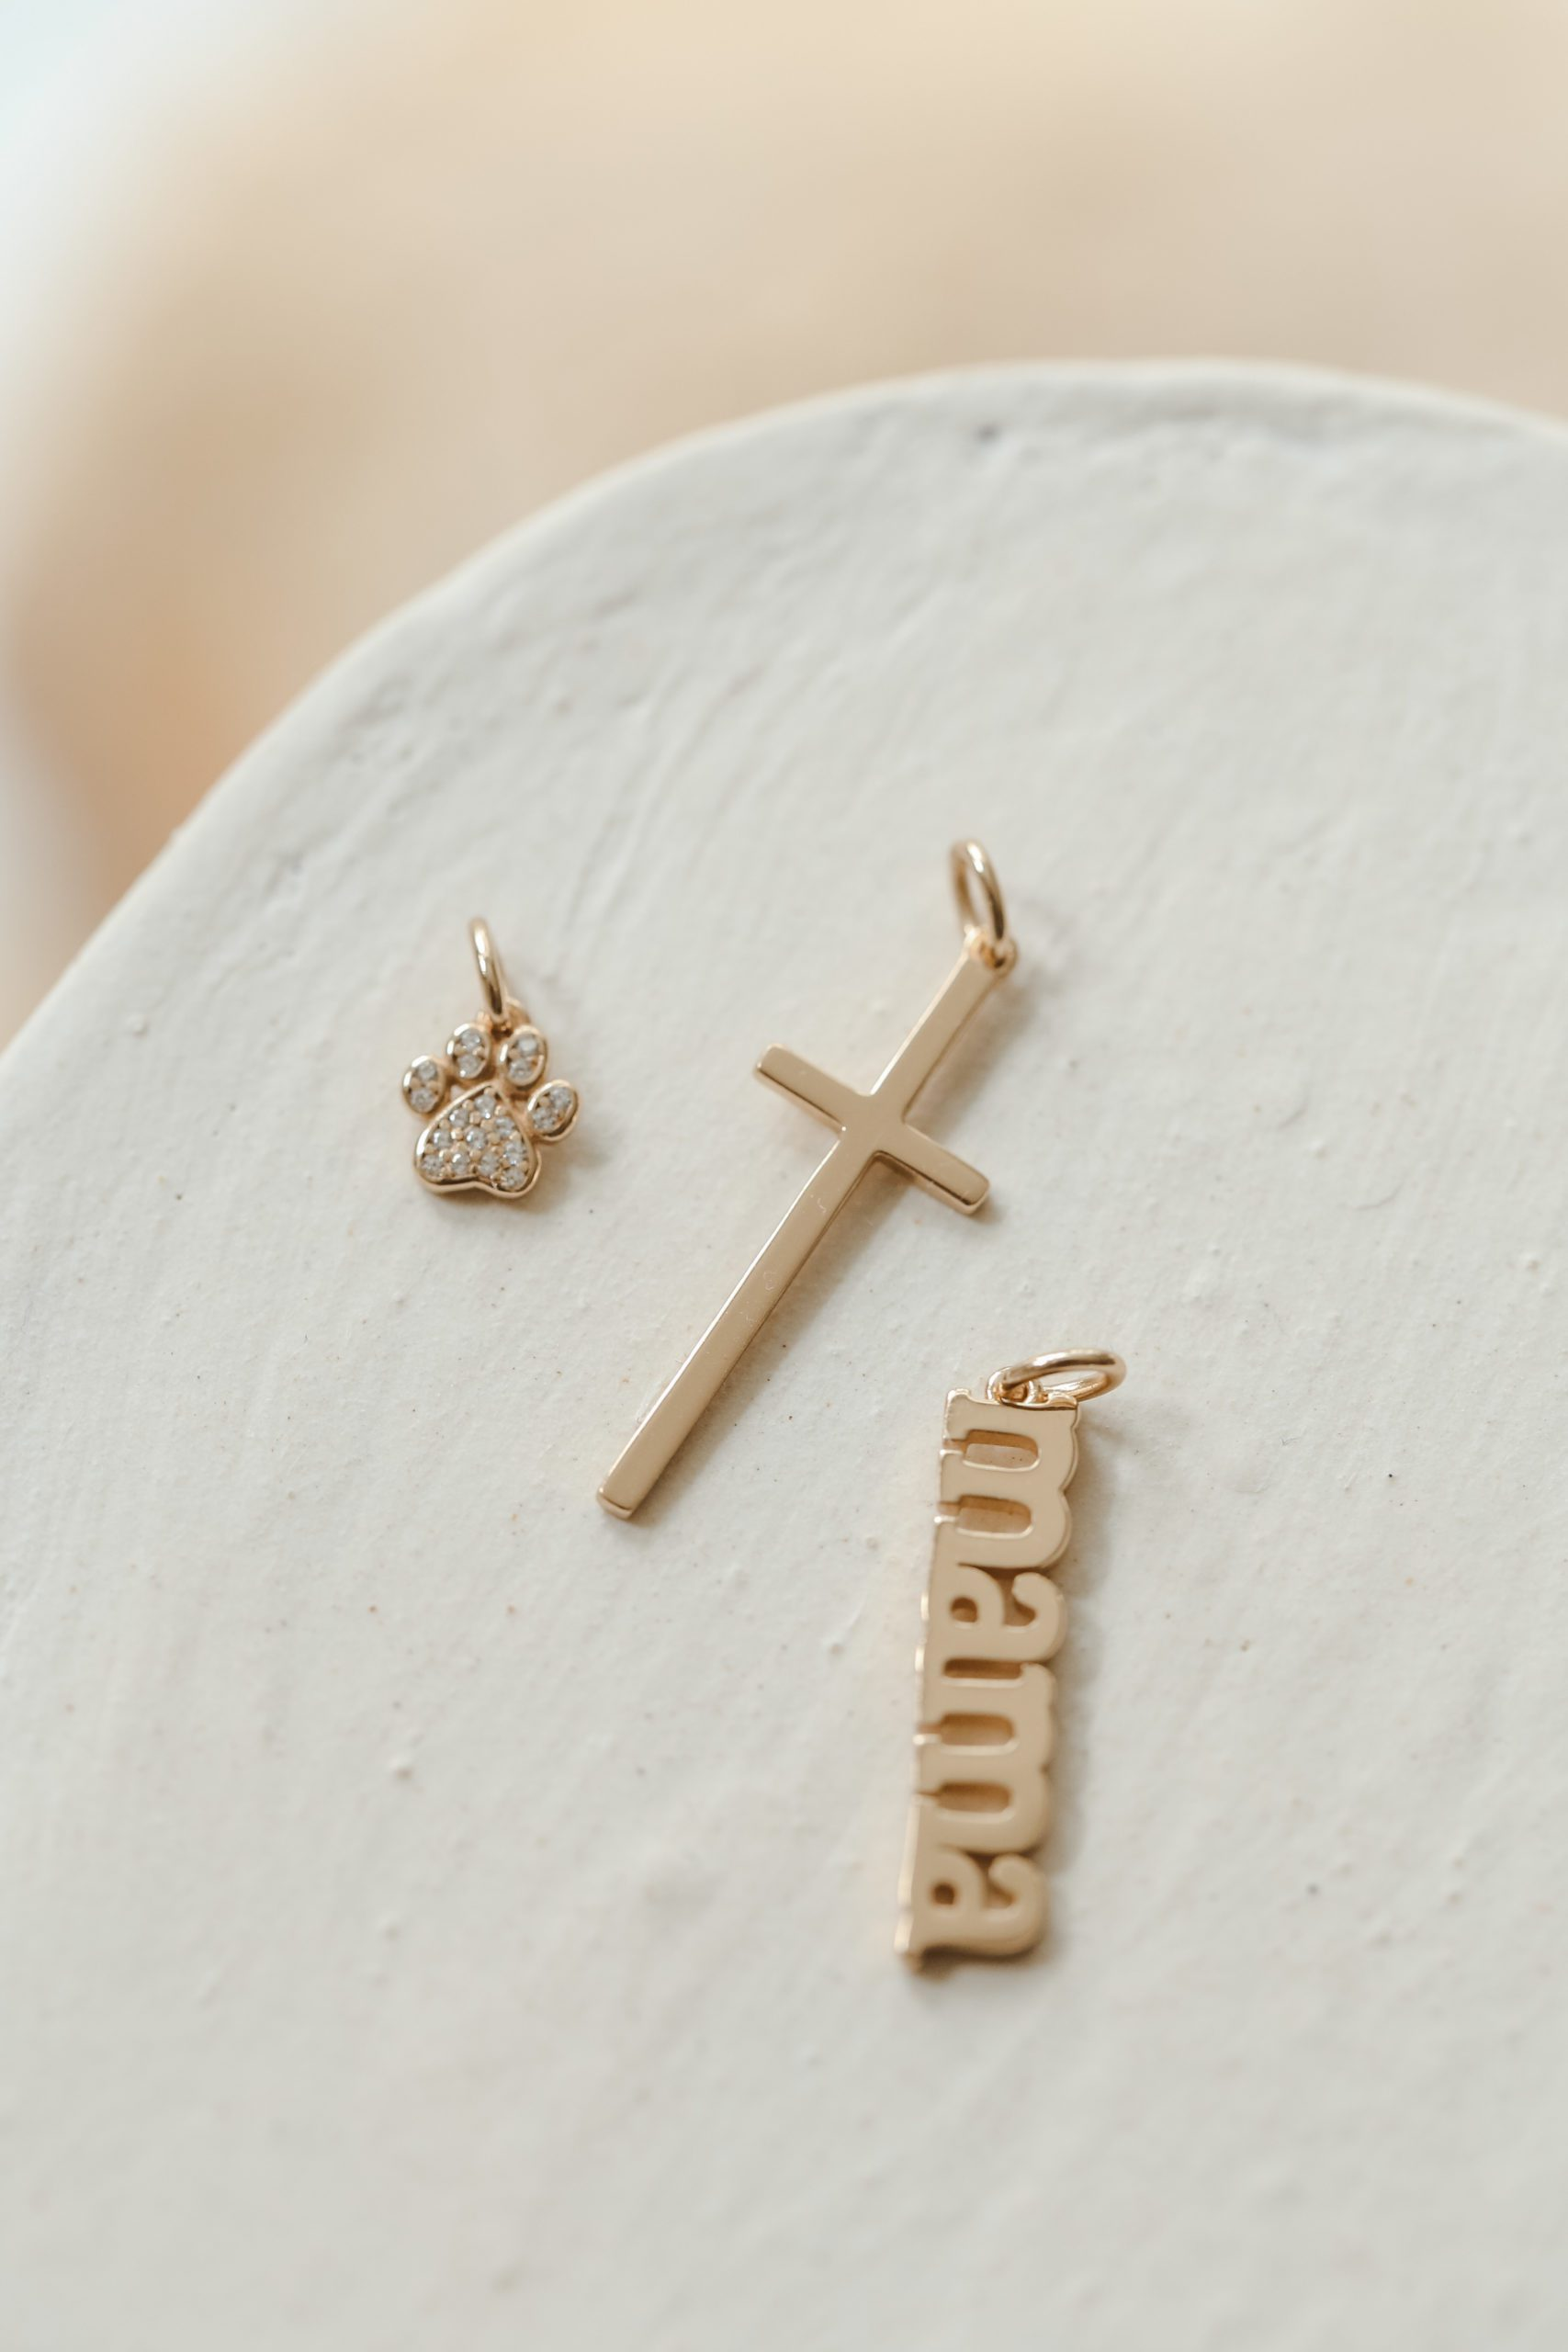 Sterling Silver Jewelry Pendants /& Charms Solid 13 mm 28 mm Vermeil Polished Cross Heart Pendant